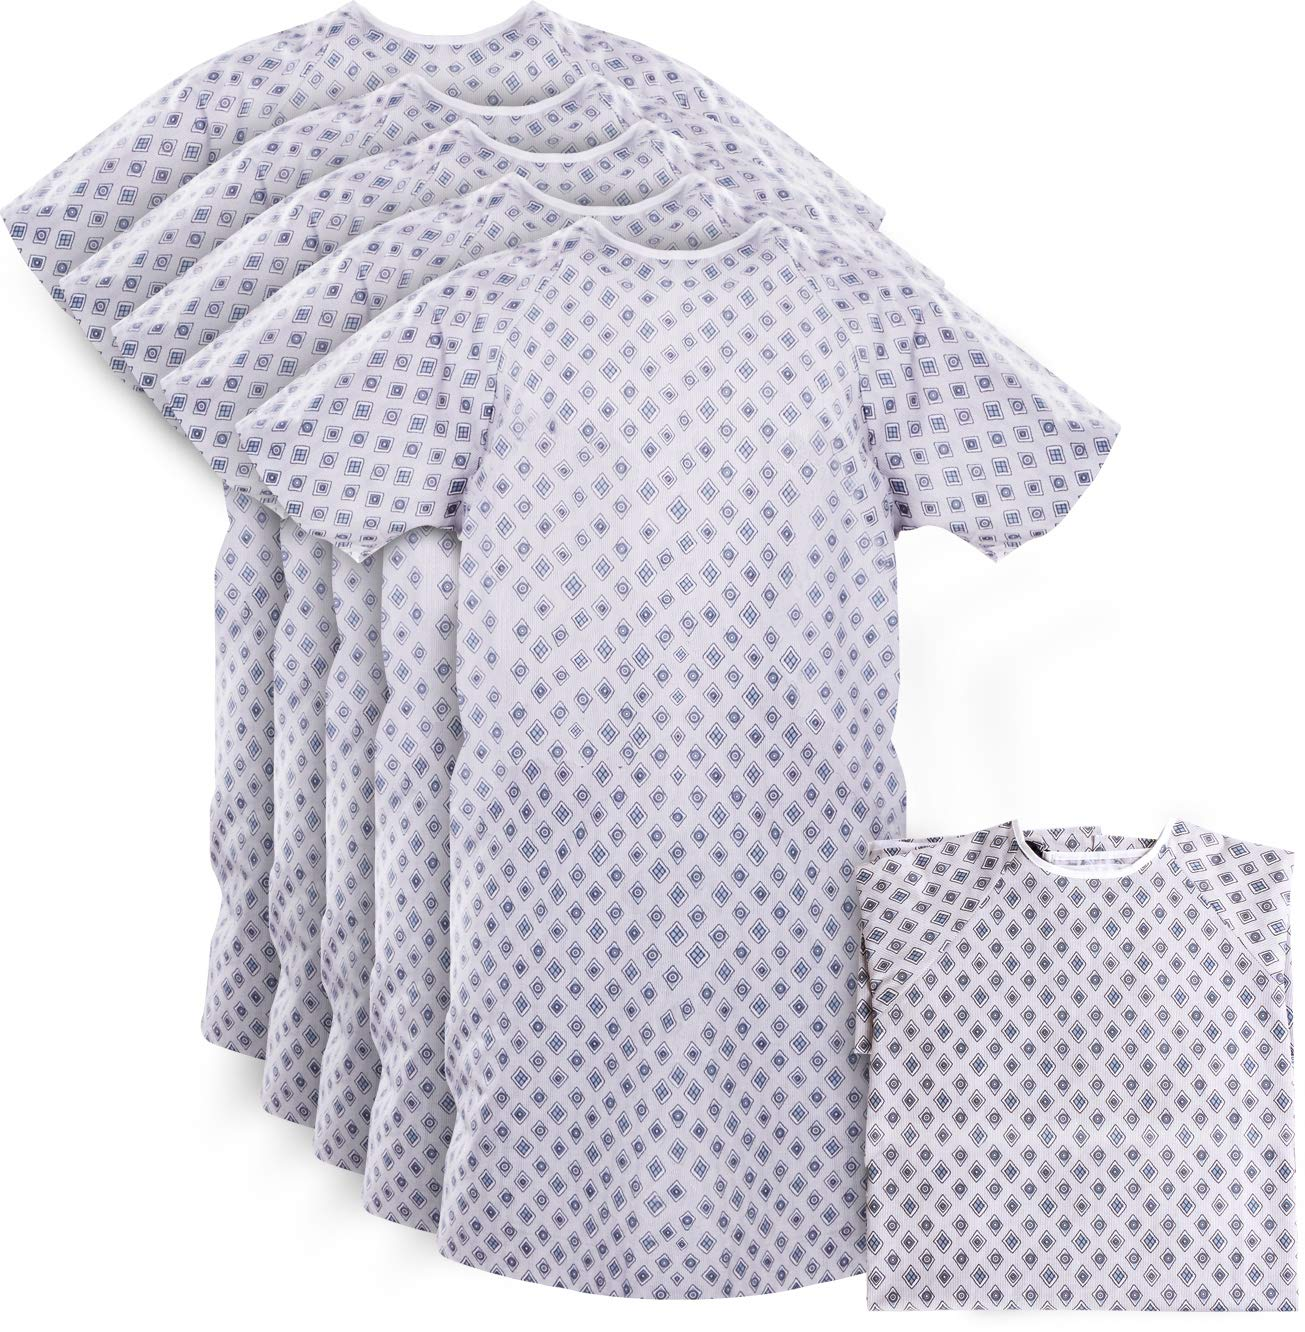 Hospital Gown - Patient Gowns Fits All Sizes Up To 2XL - Back Tie - Pack of 6 by Utopia Care